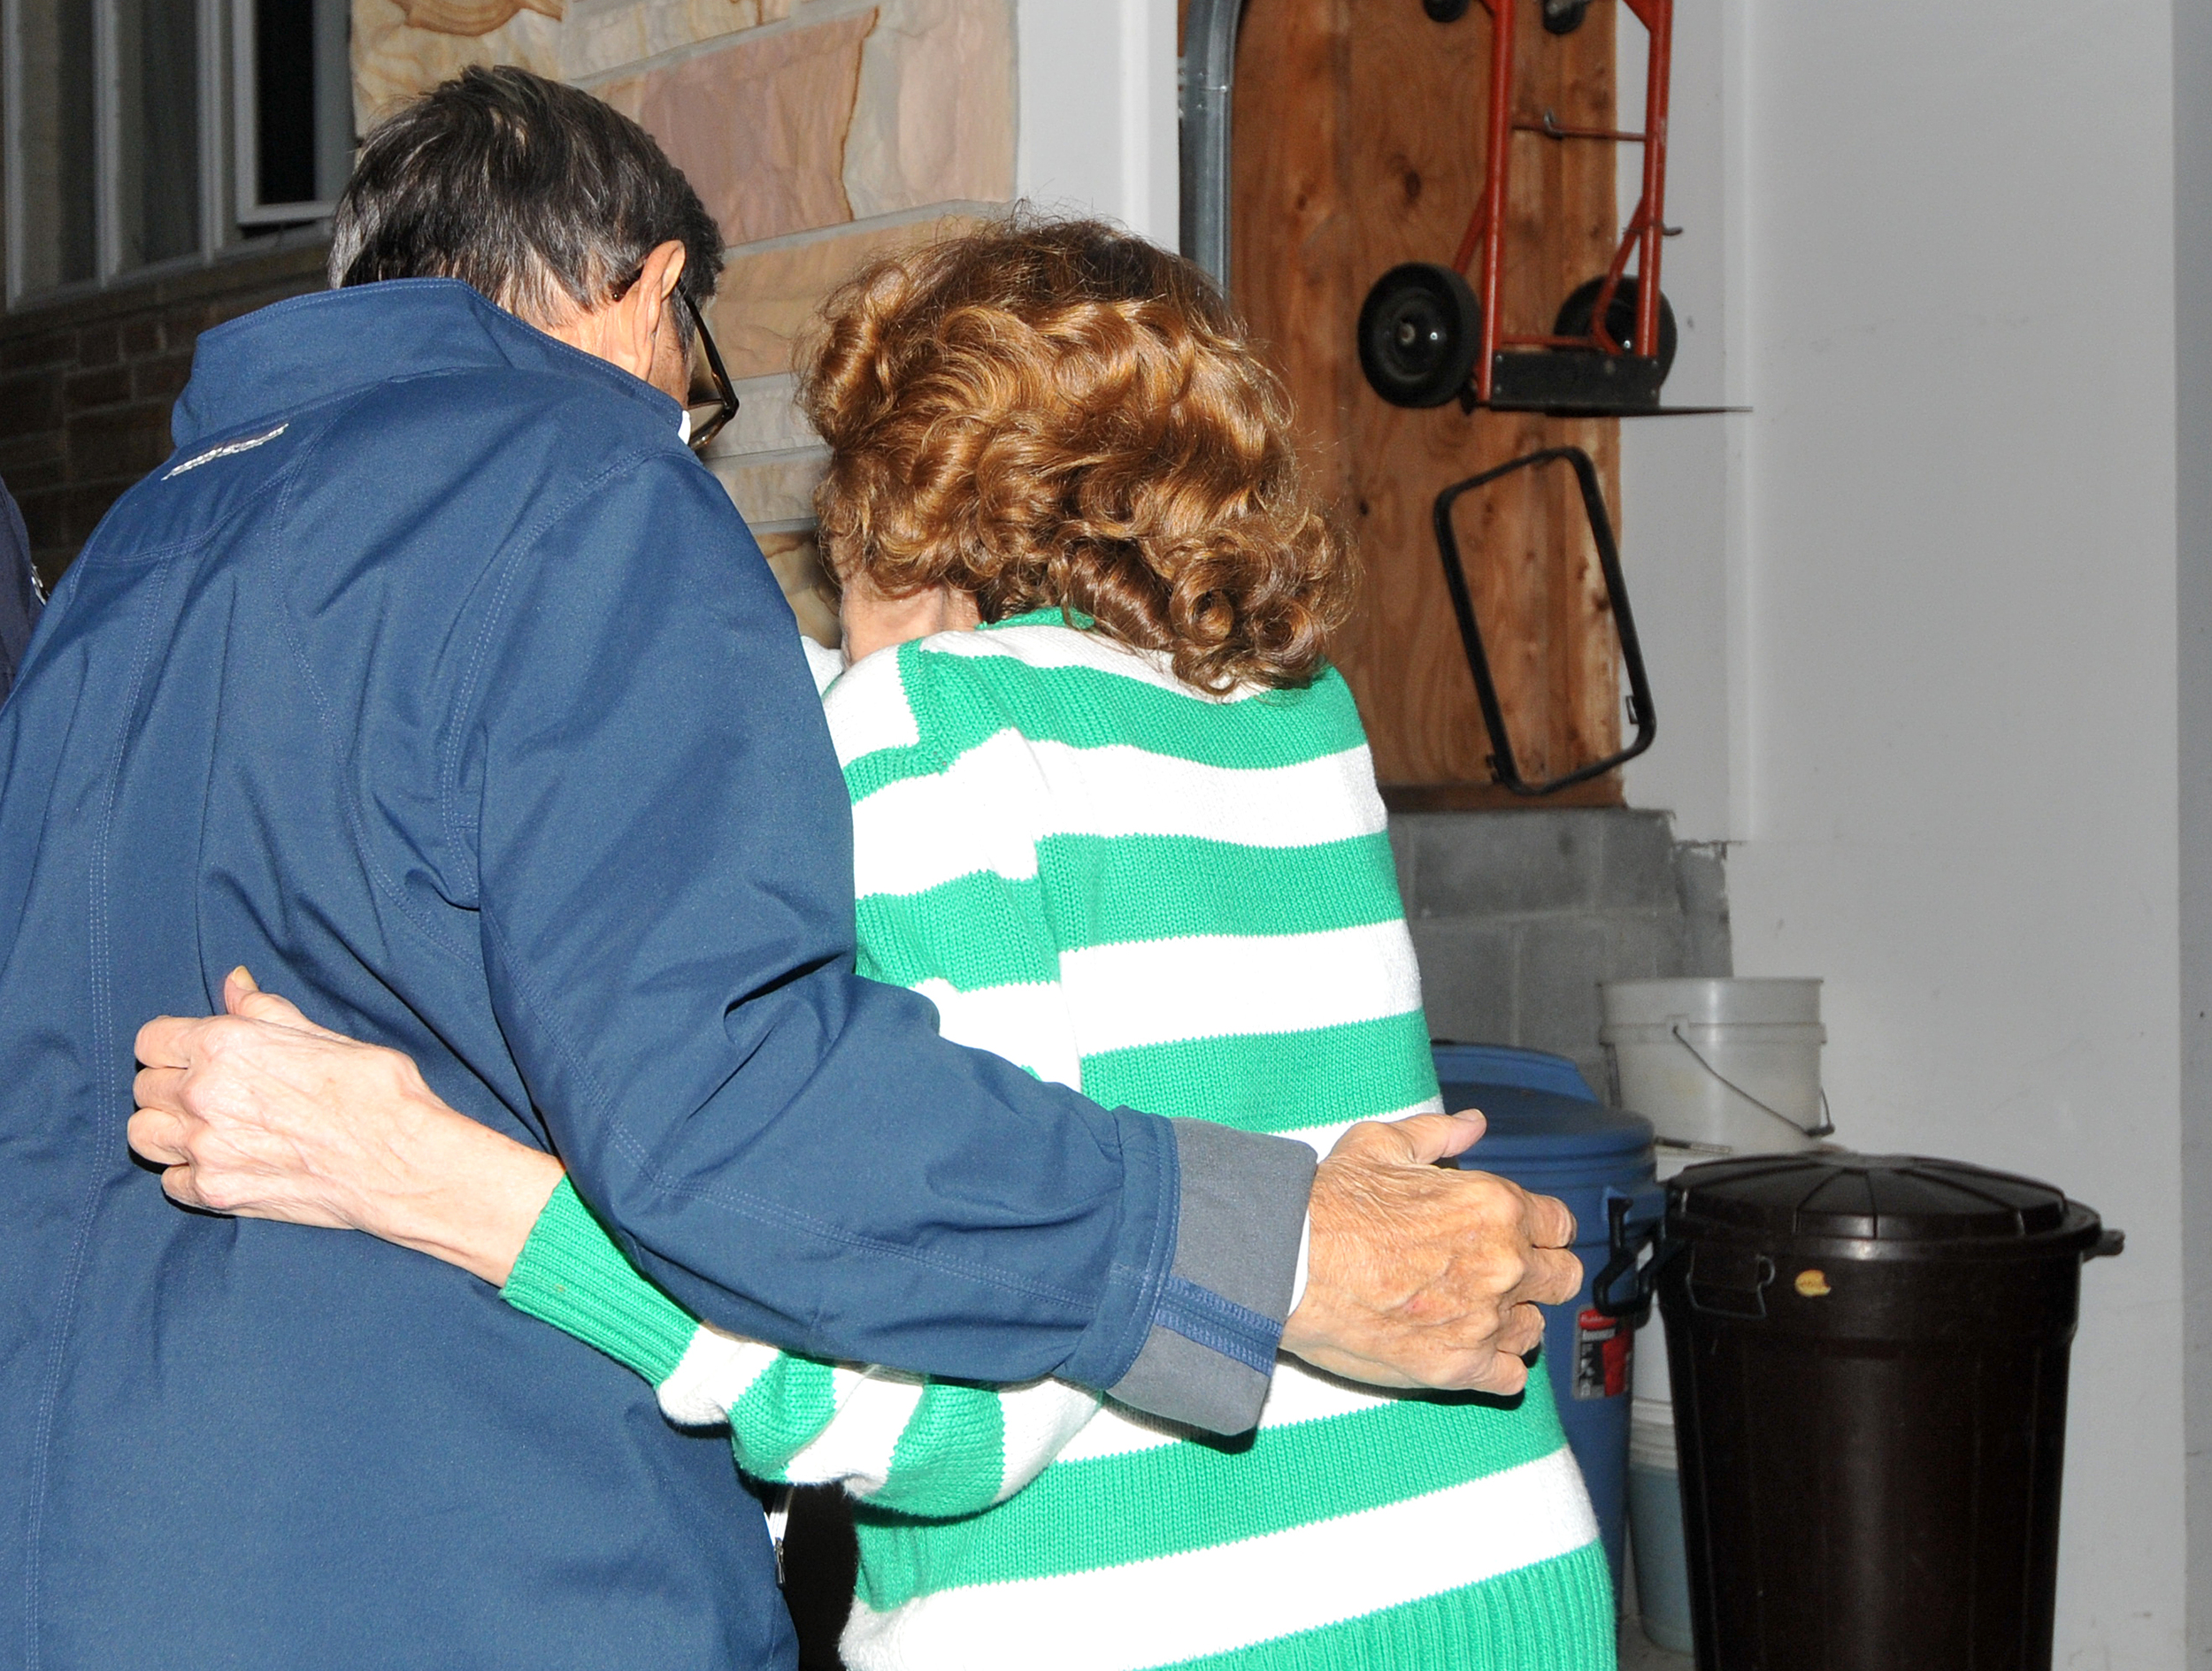 Head coach Joe Paterno and wife Sue embrace as they walk into their home in State College on Tuesday night. A crowd of around 300 students gathered in support of Paterno.